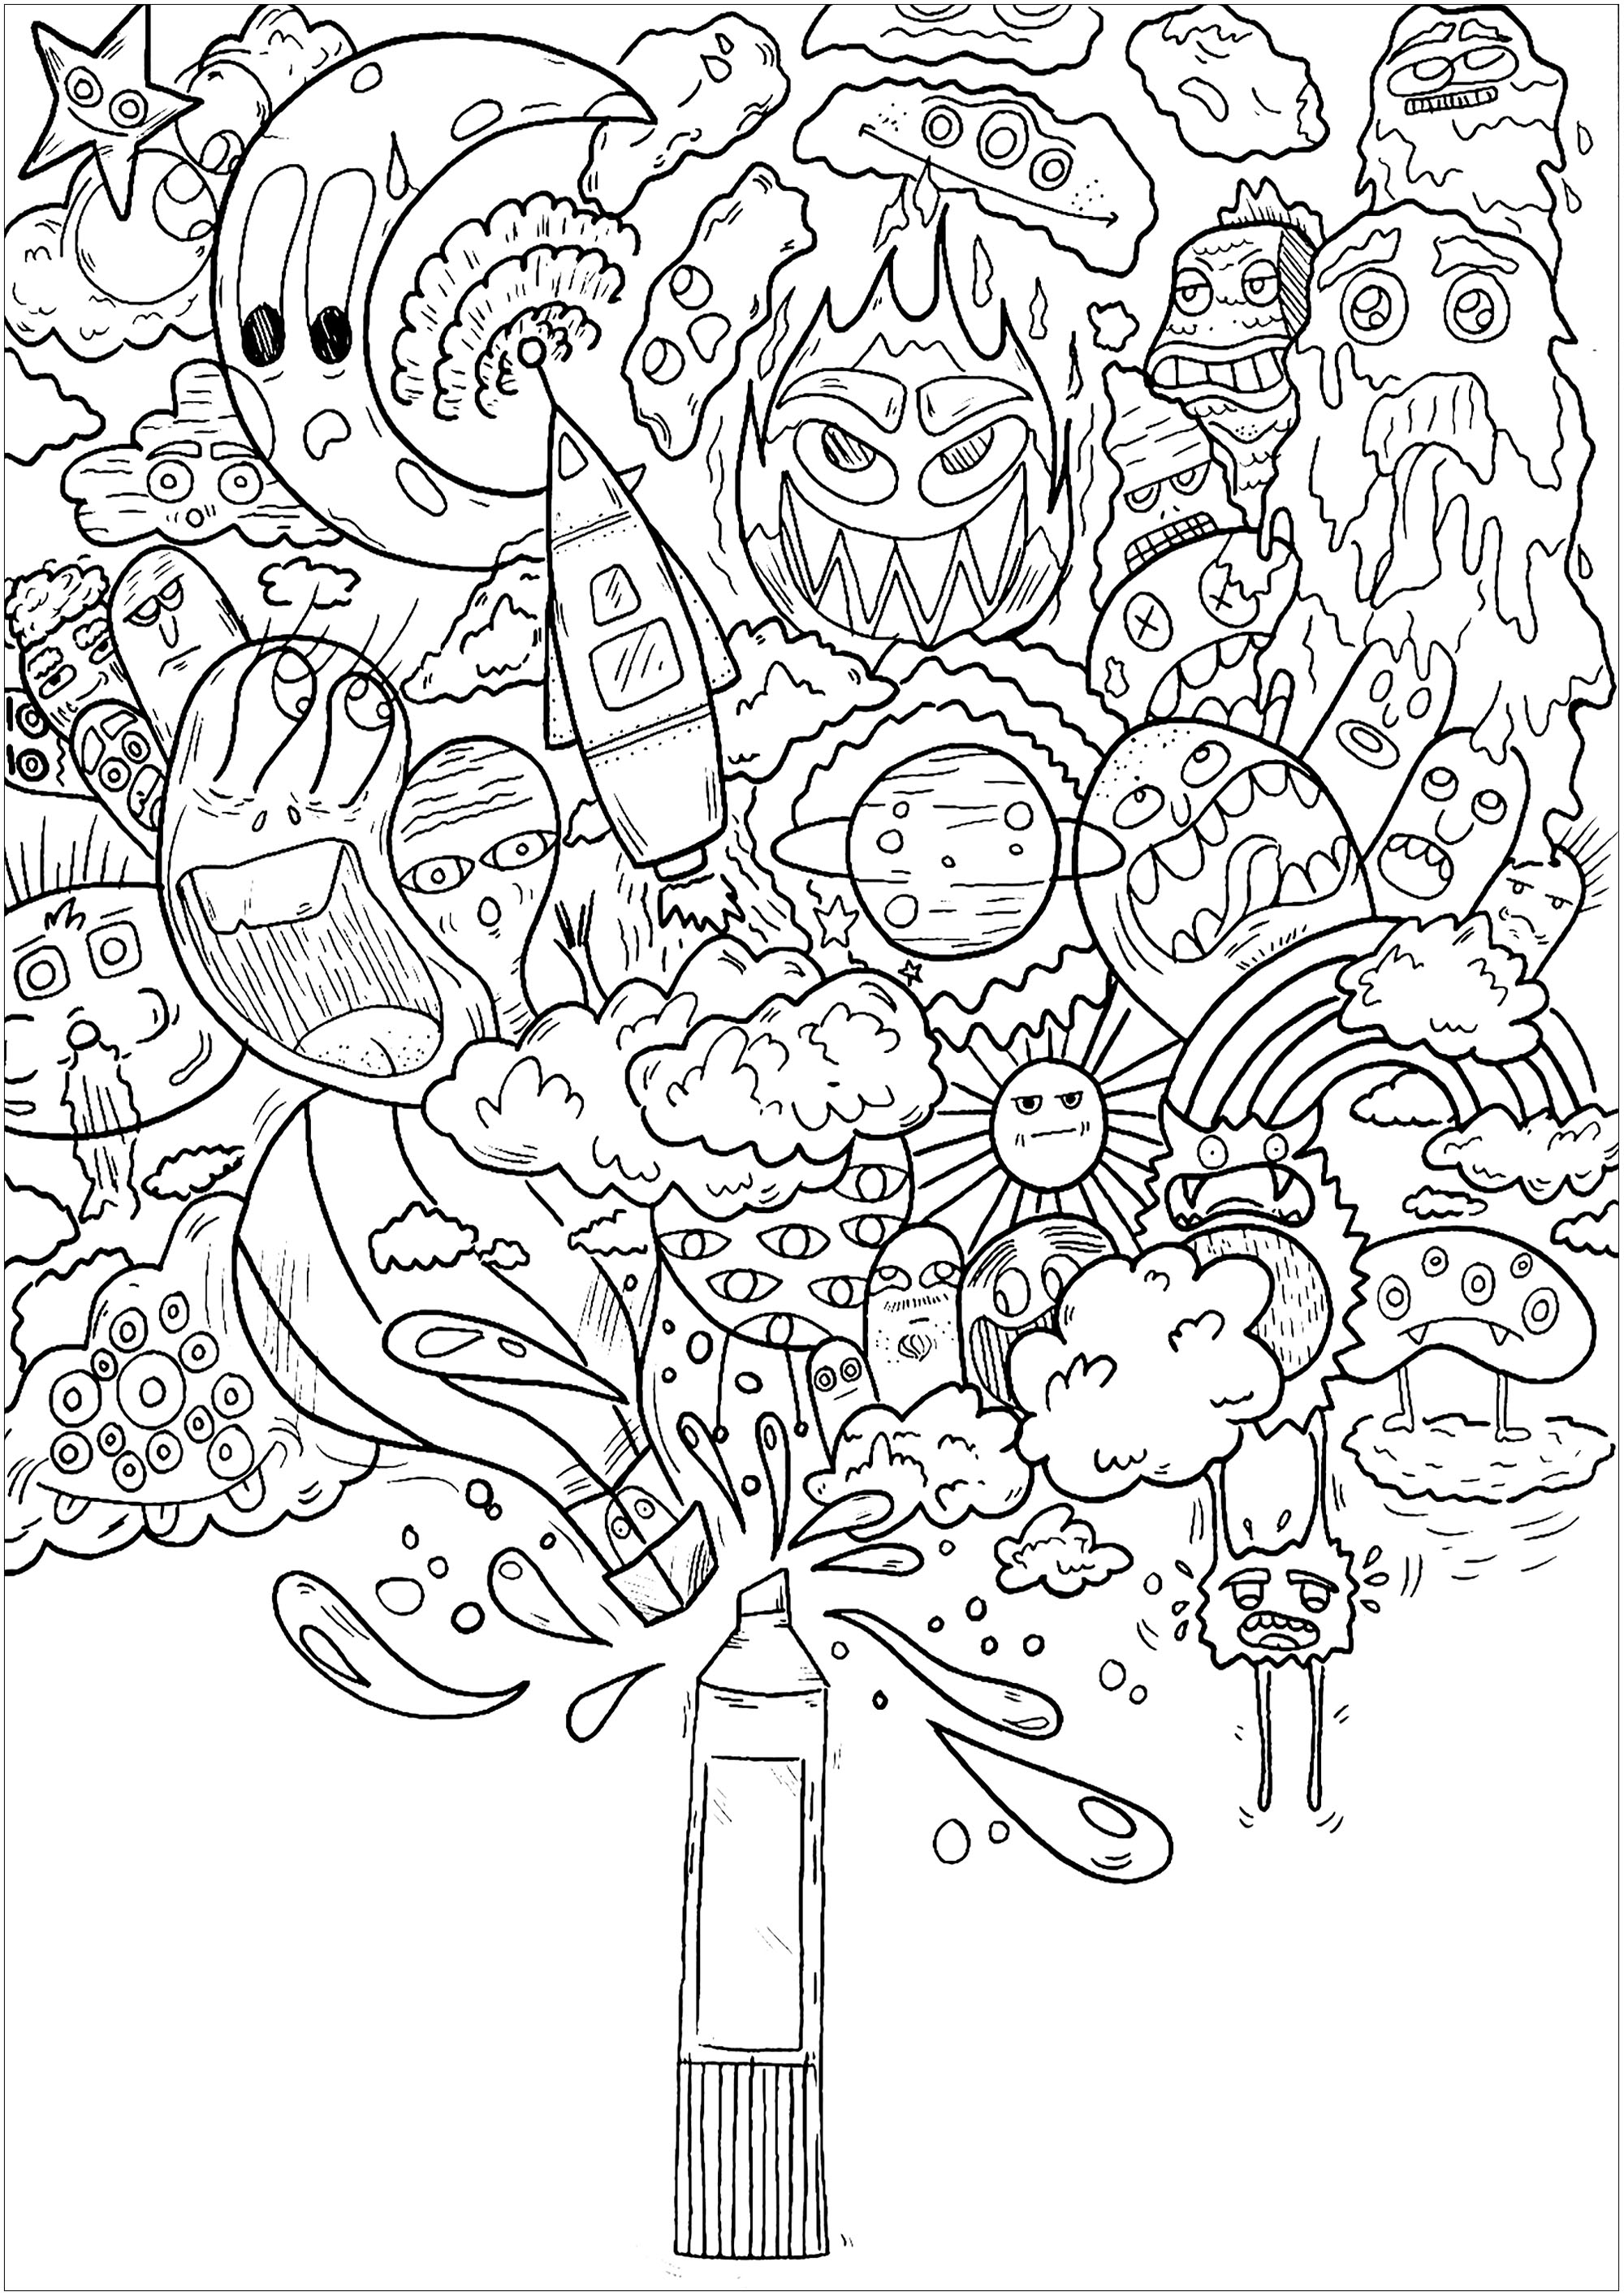 free doodle art to print and color get this printable doodle art coloring pages for grown ups and color free doodle art print to